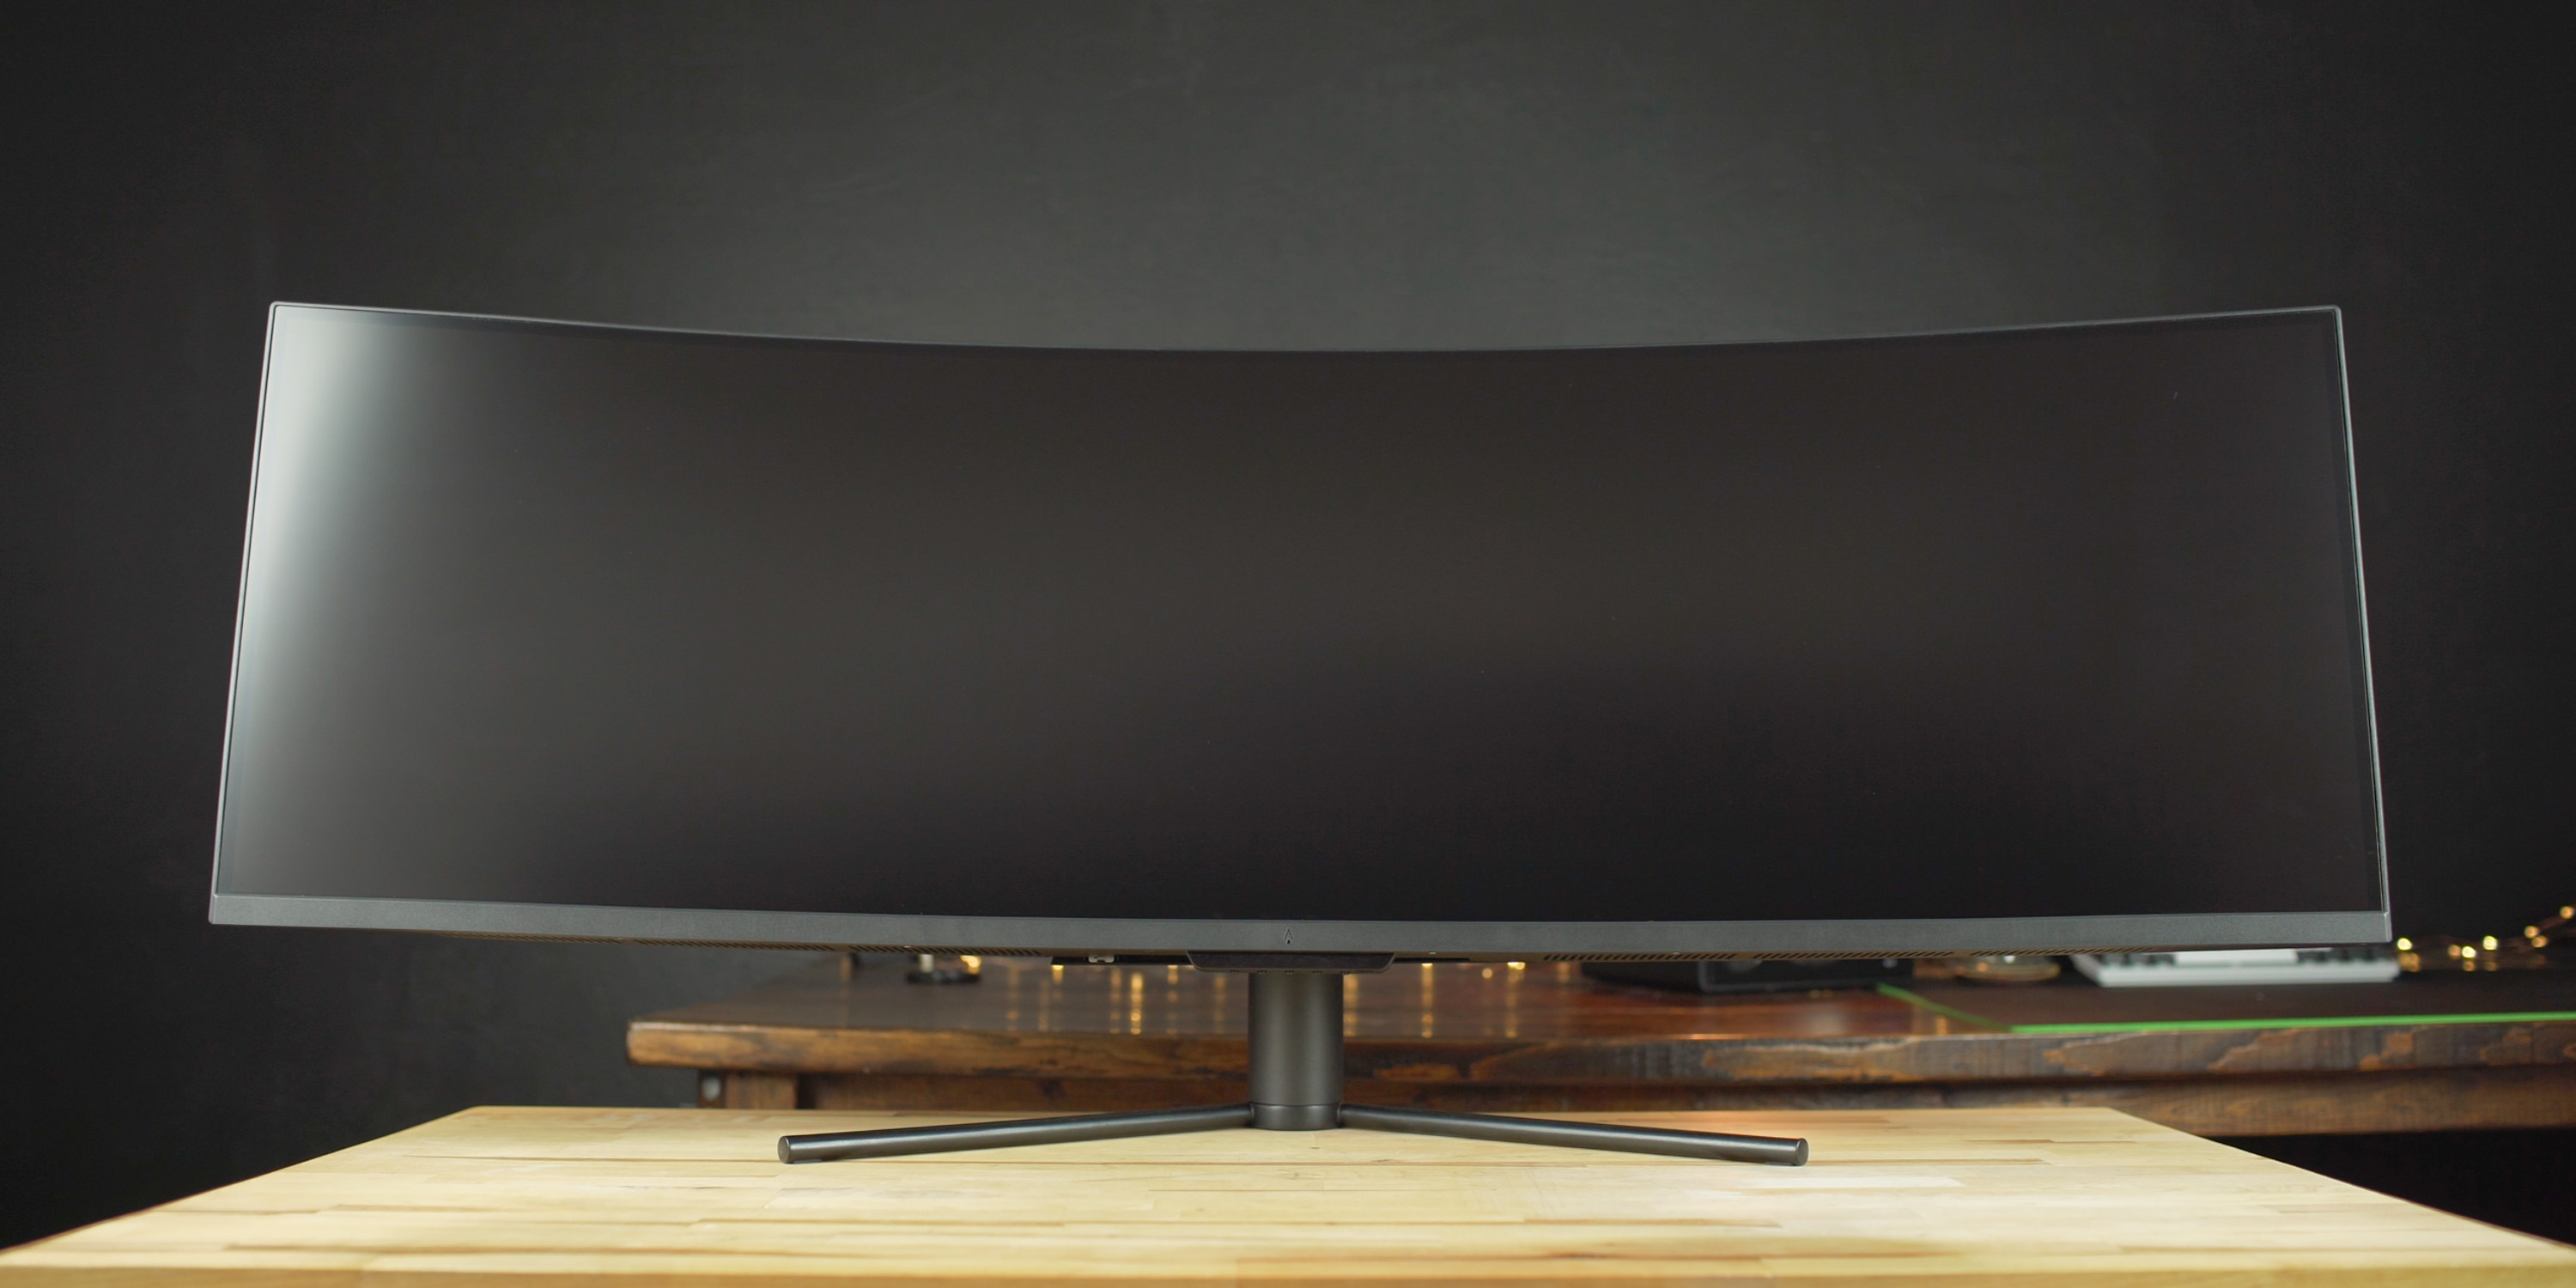 Dark Matter 49-inch monitor standing on a desk